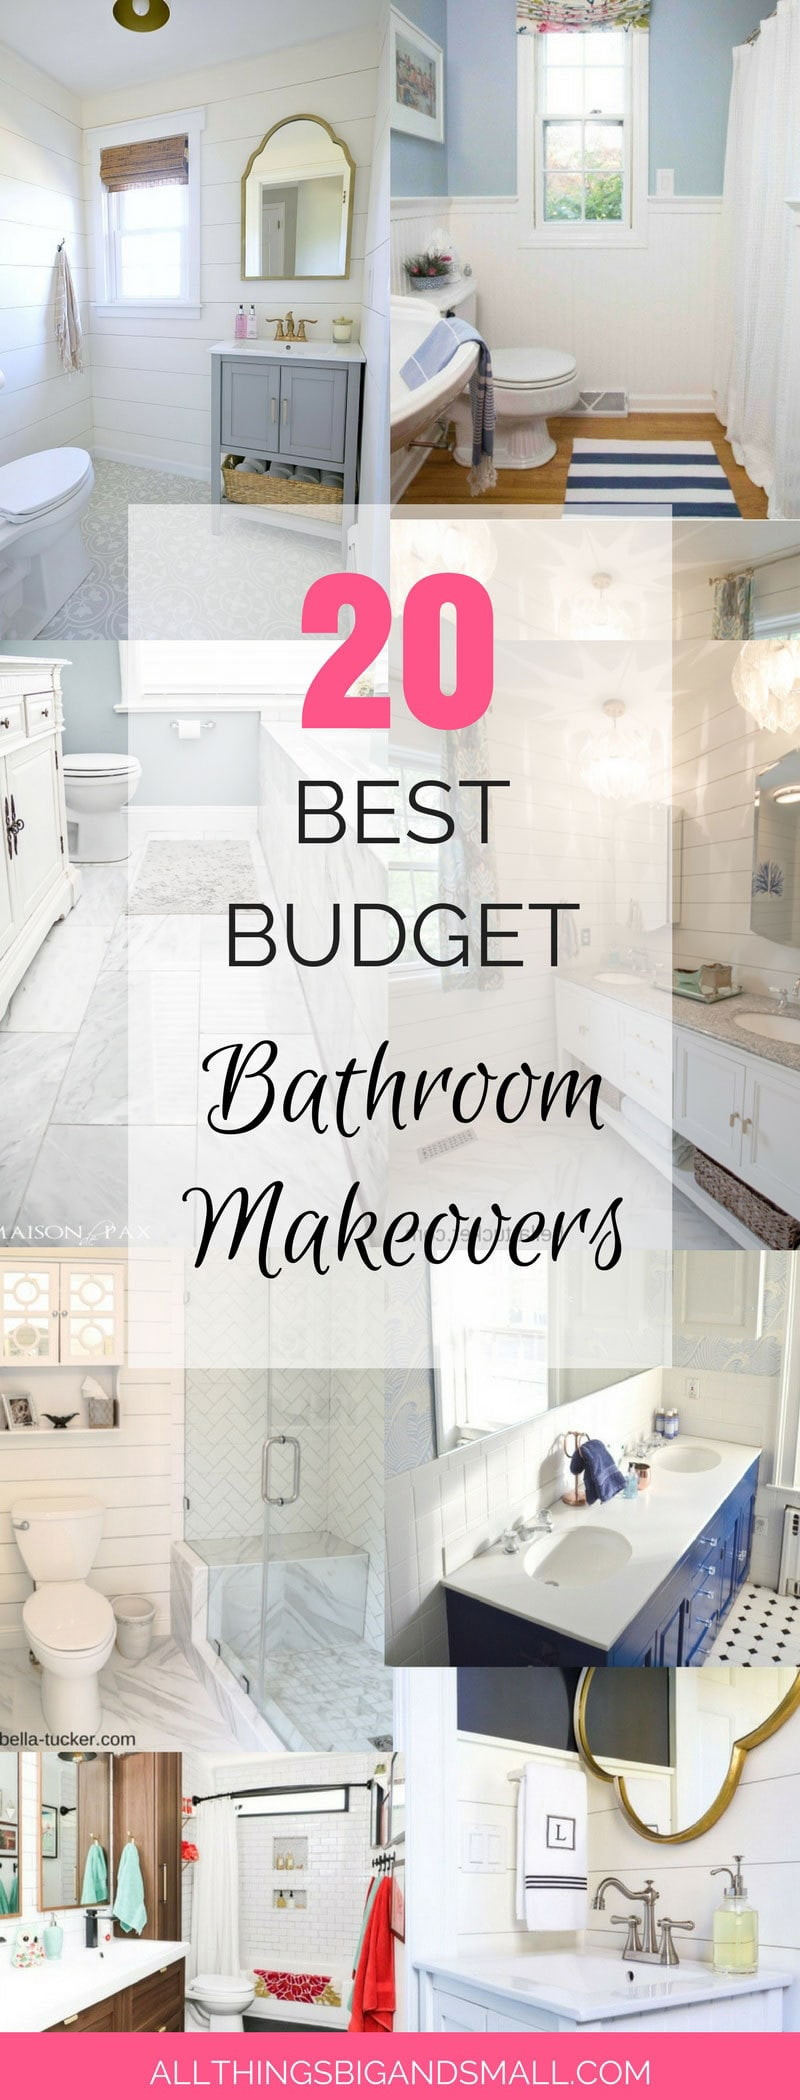 Budget Friendly Diy Home Decorating Ideas Tutorials 2017: 20 Best Bathroom Makeovers That Are Budget Friendly